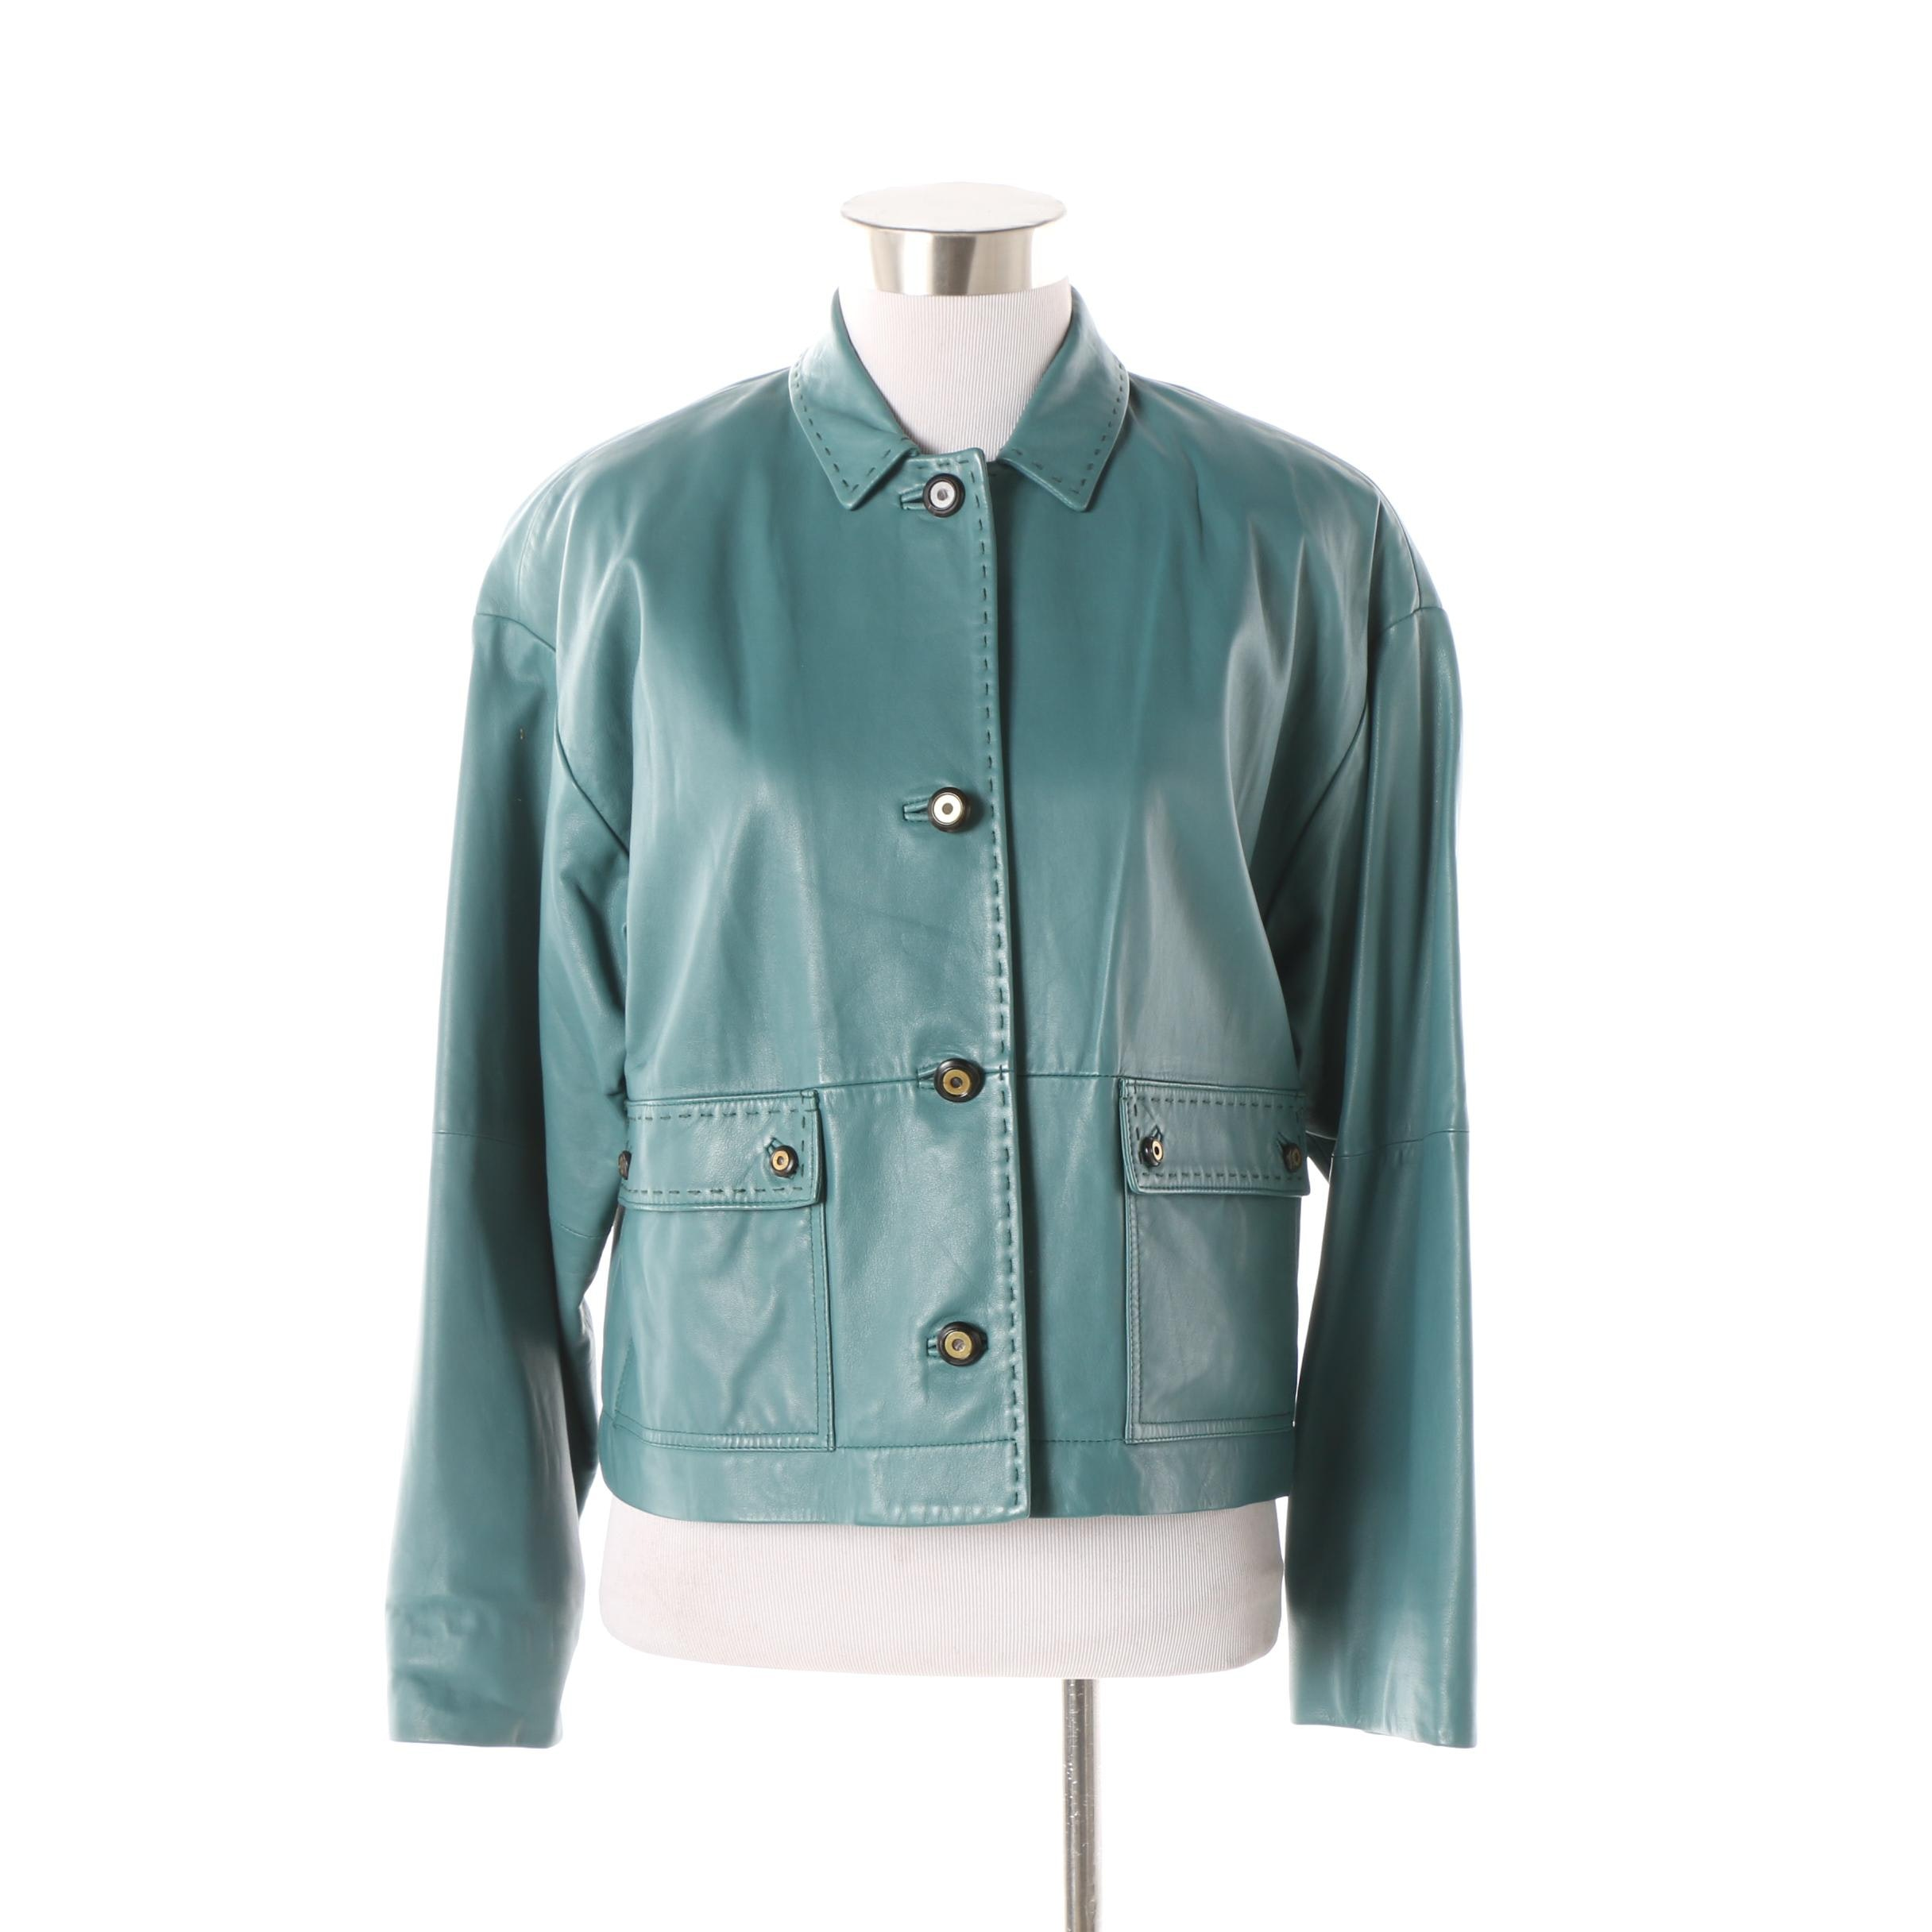 Women's Worth Petite Teal Leather Jacket with Stitched Trim